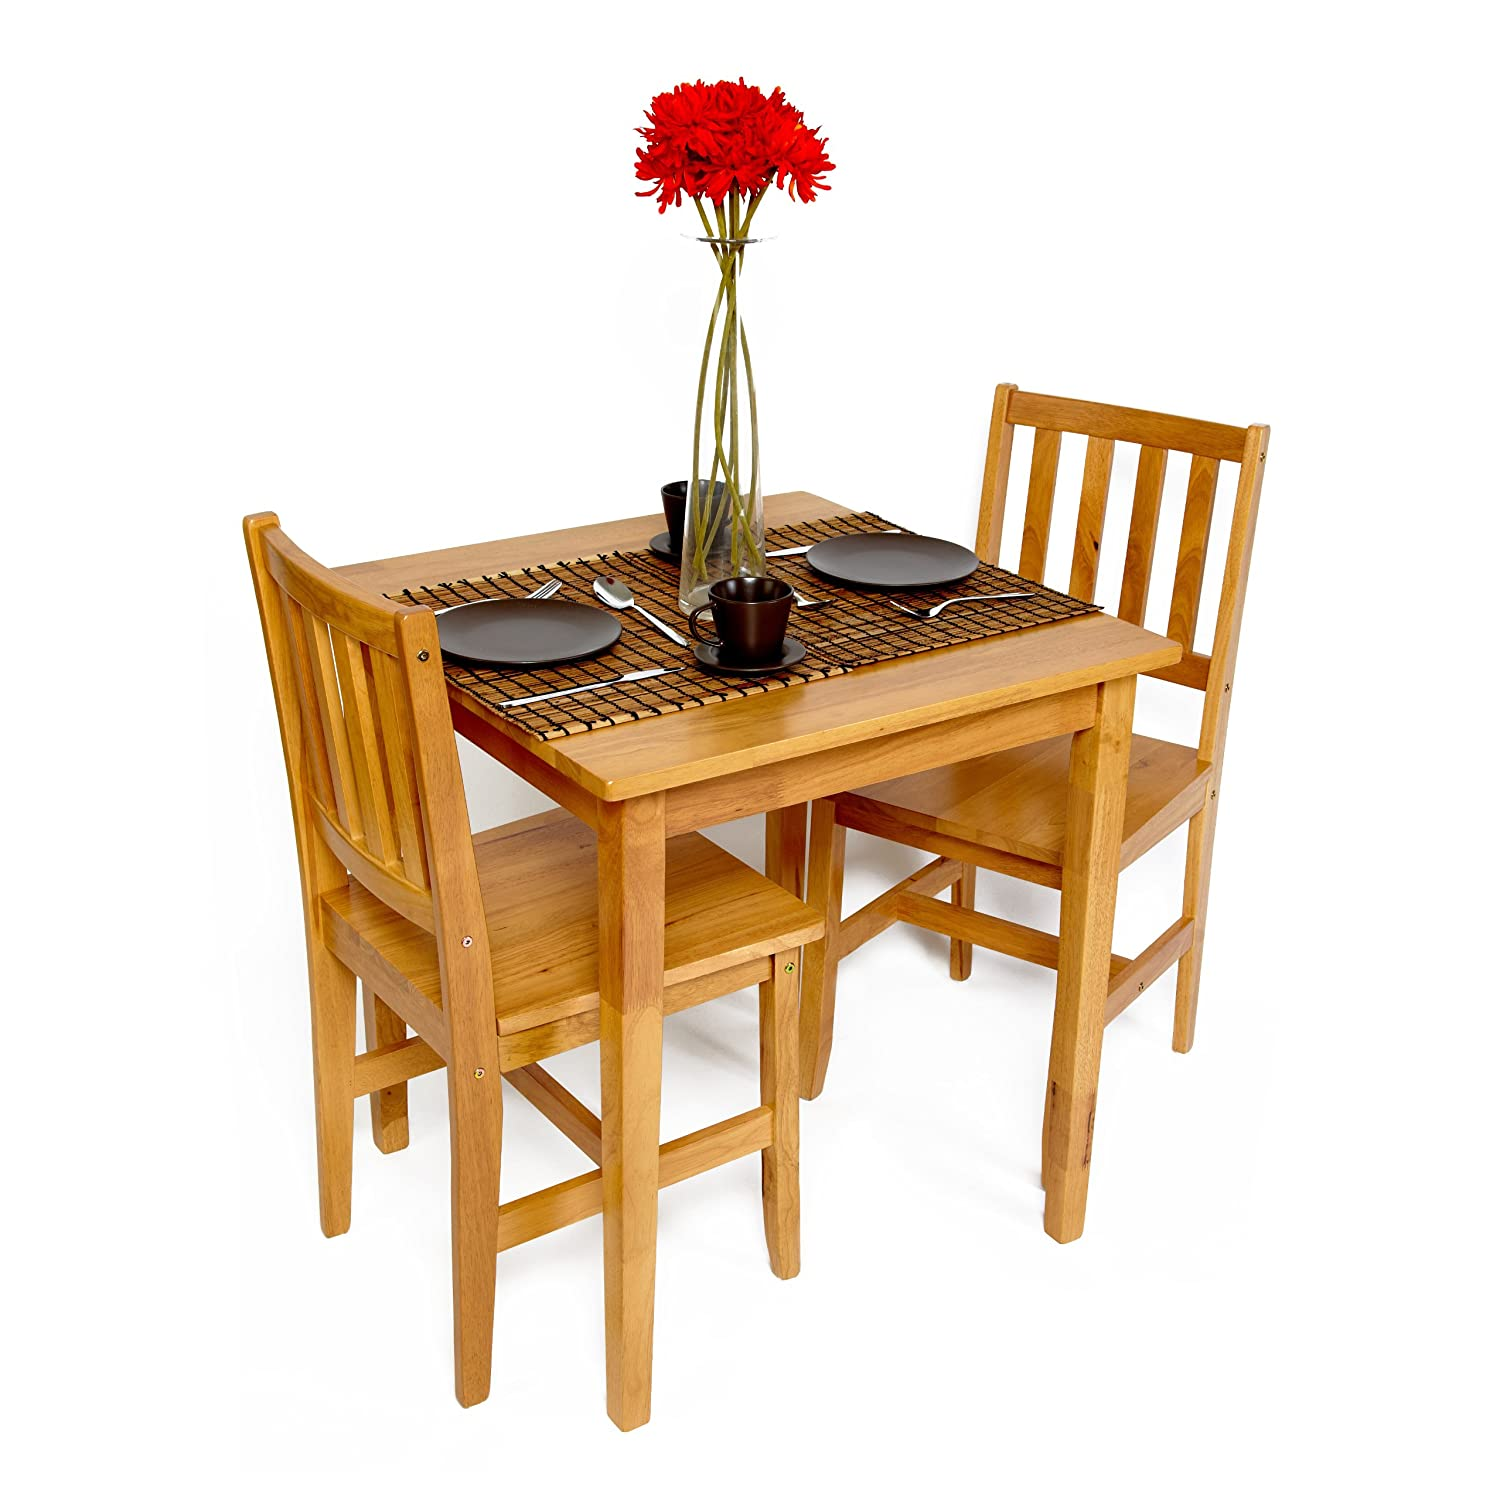 Table and chairs set dining bistro small cafe tables wood for Small table and stool set